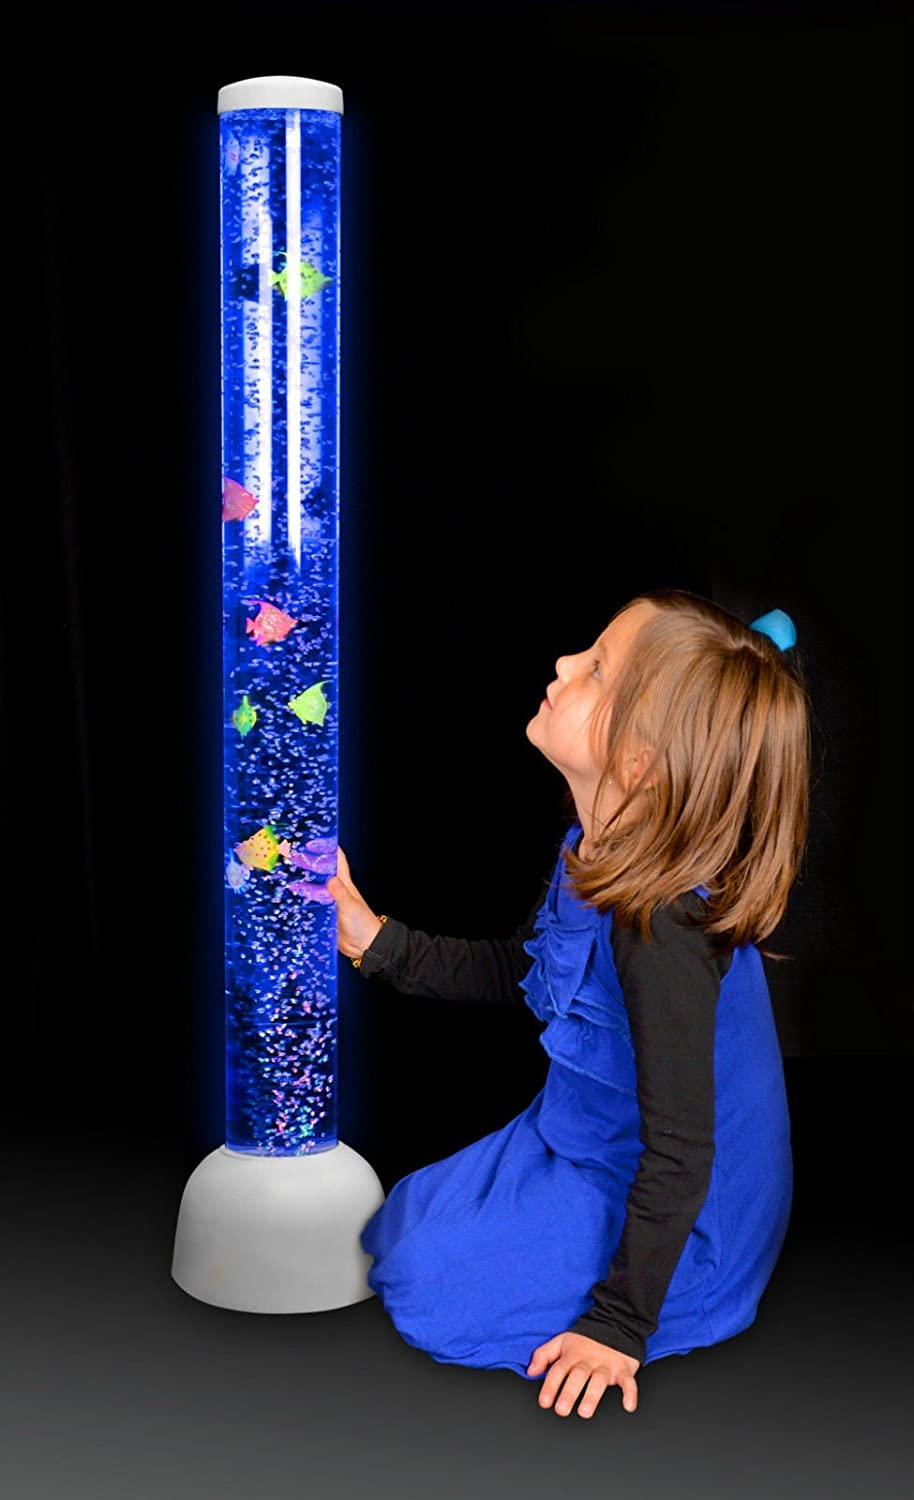 Large Bubble Tube Floor Novelty Lamp With Fish And Led Lights : Playlearn Large - Bubble Tube LED Light Floor Novelty lamp with Fish, Balls... eBay